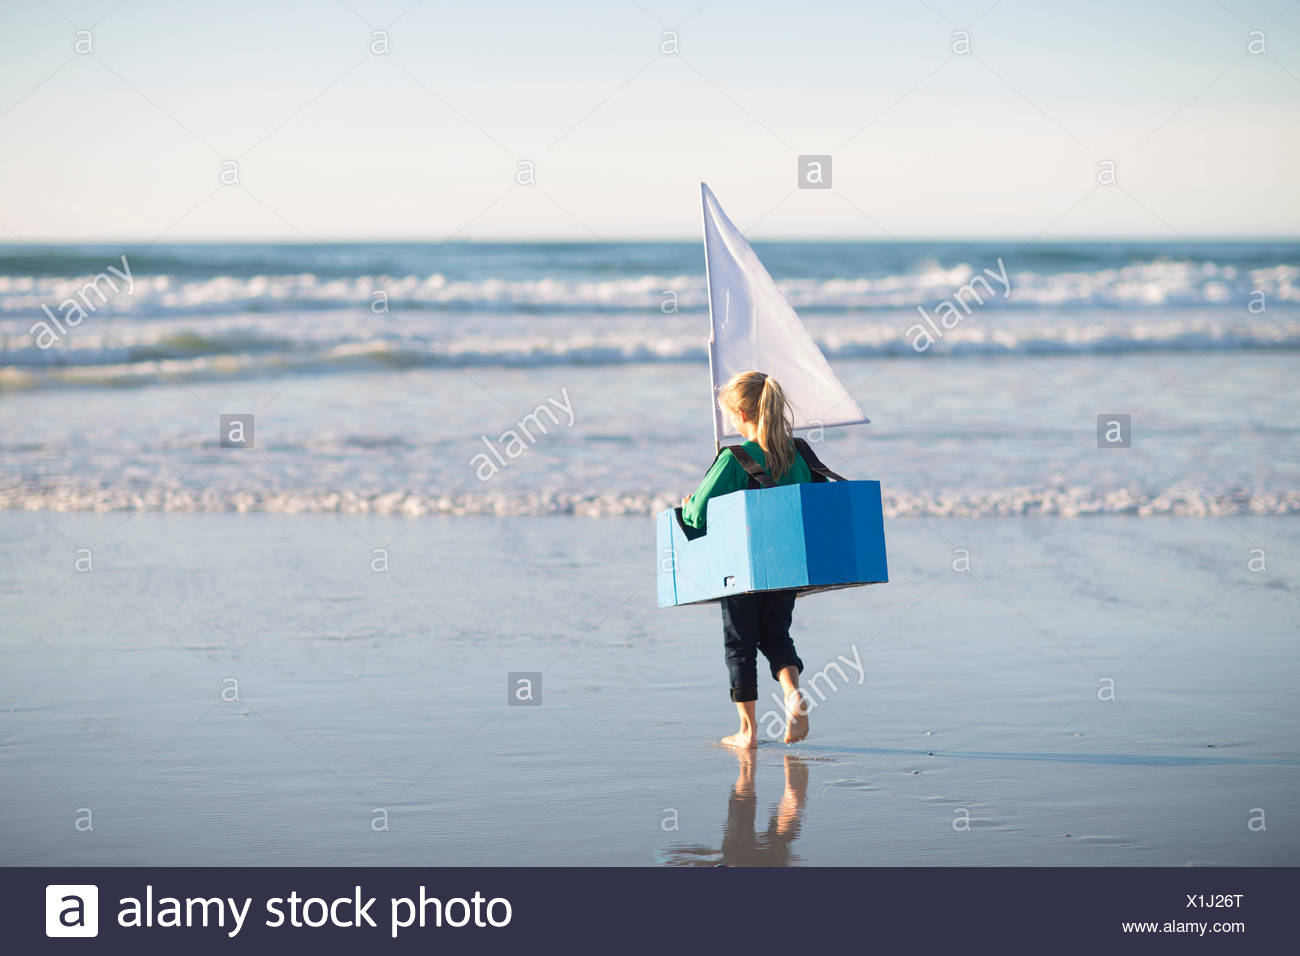 Girl running with toy boat into sea - Stock Image